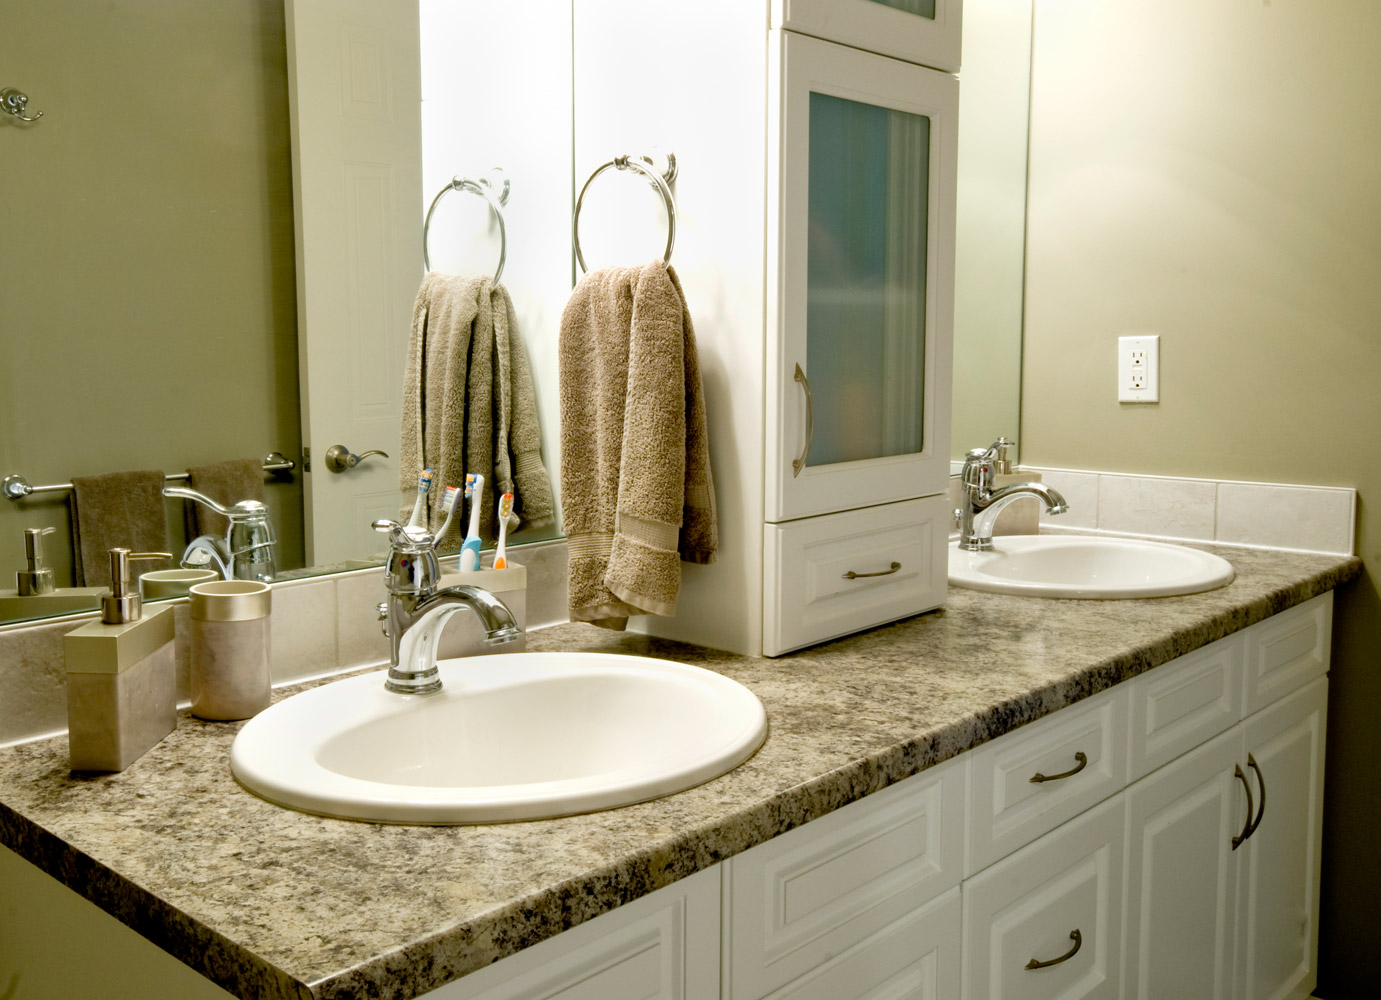 Cream and white bathroom design and renovation in barrie ontario with two sinks and lots of storage